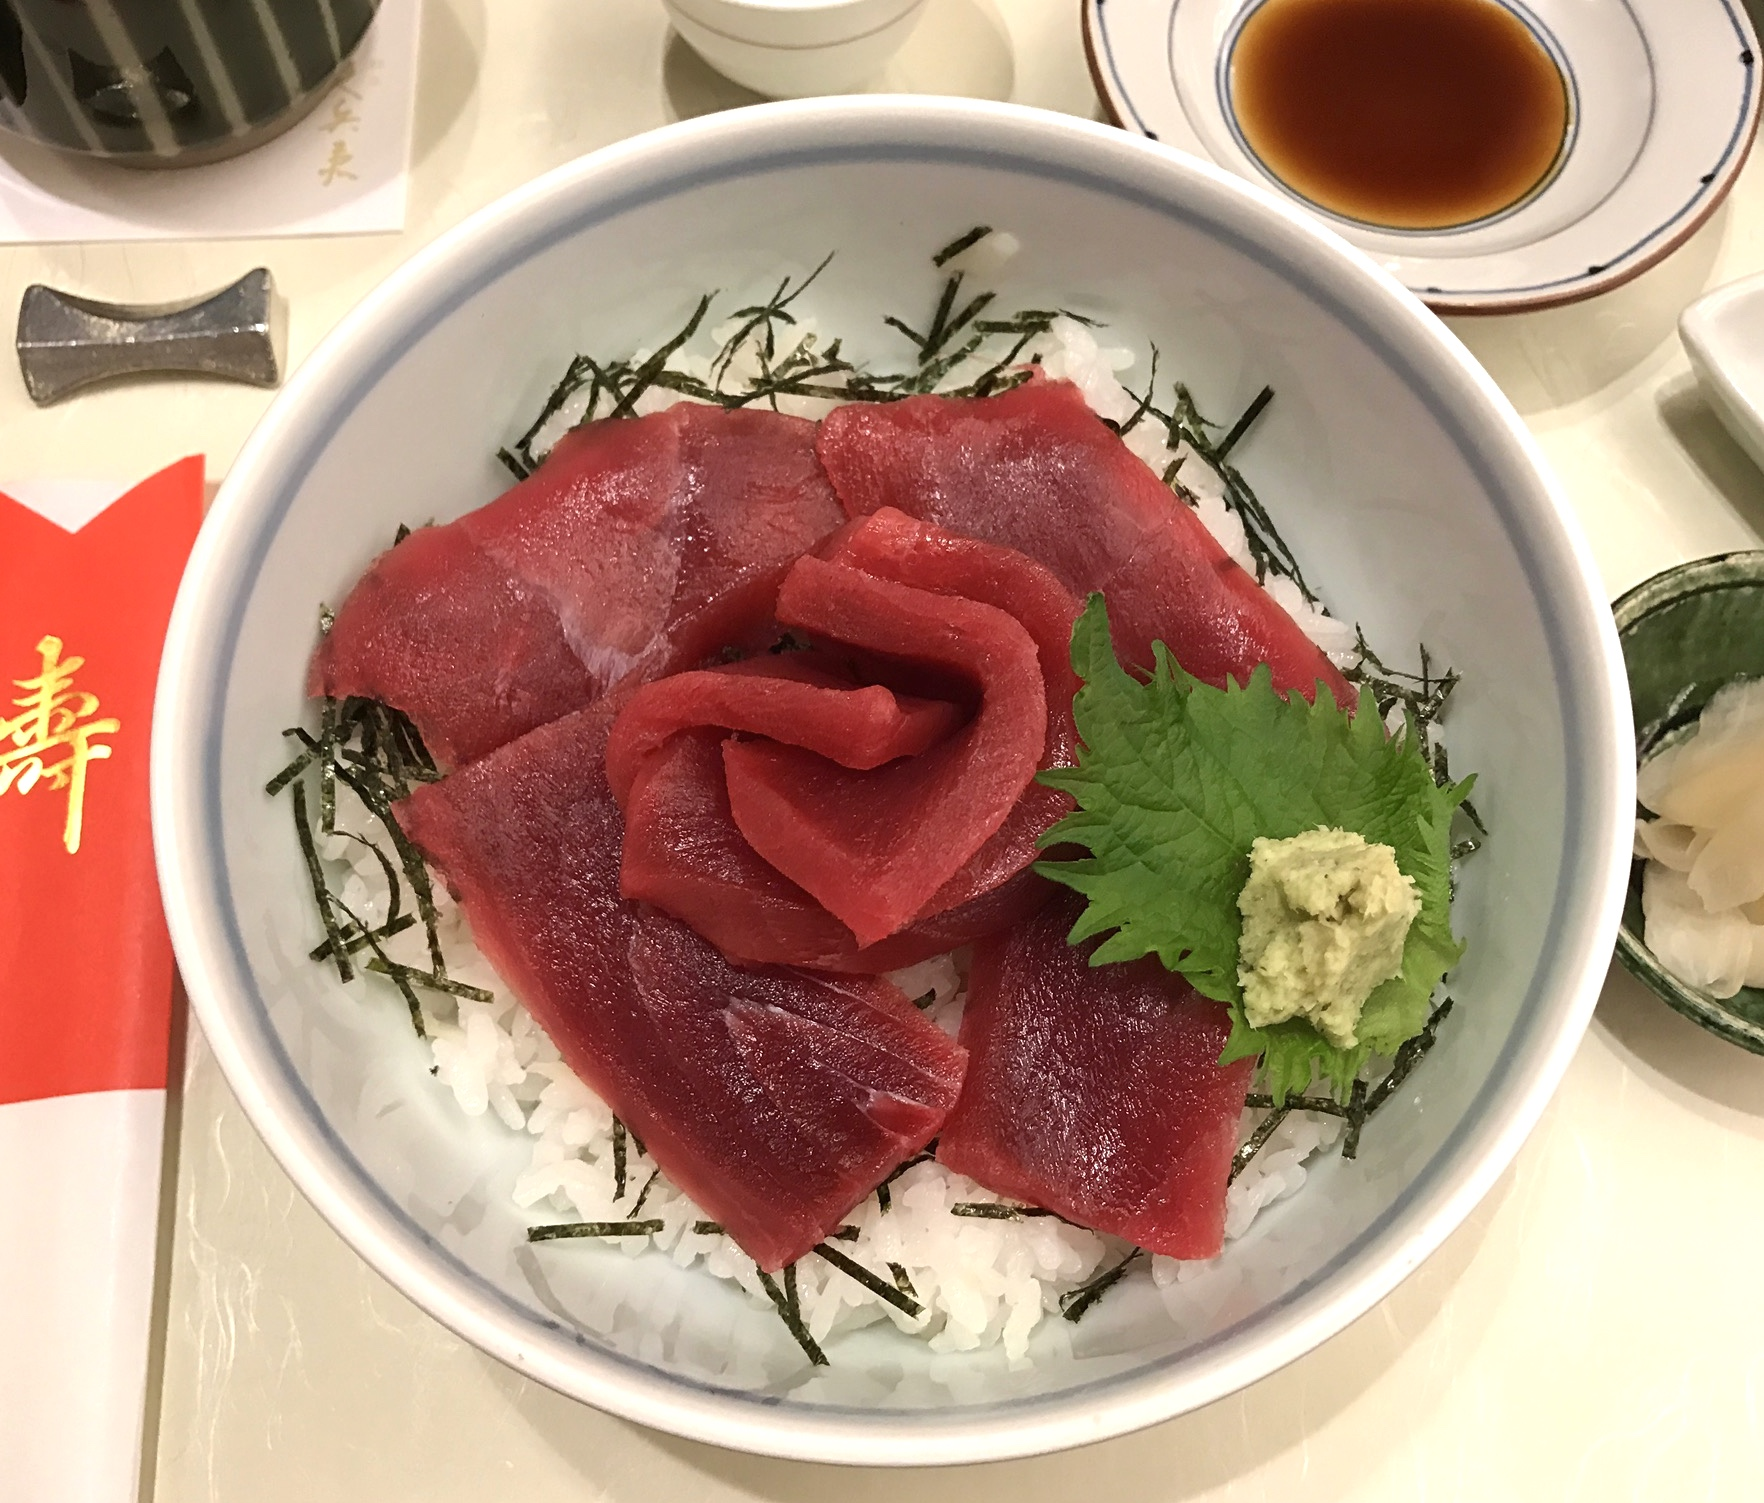 Look at this sushi at Ginza Kyubey! The best tuna we've ever had!